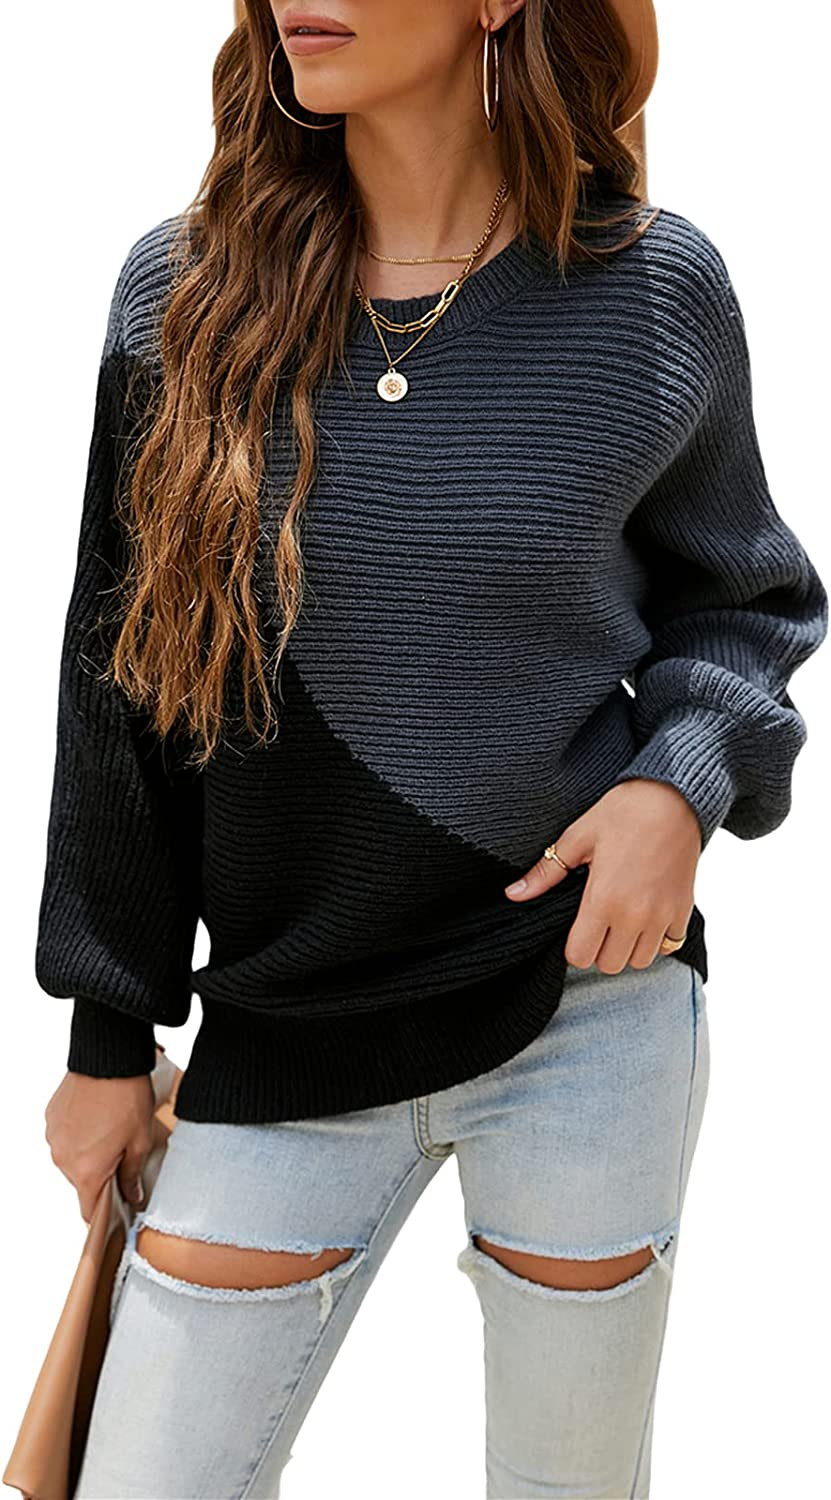 Women's lowest price Patchwork Sweater Long Sleeves 55% OFF Loose Knitted Neck Round